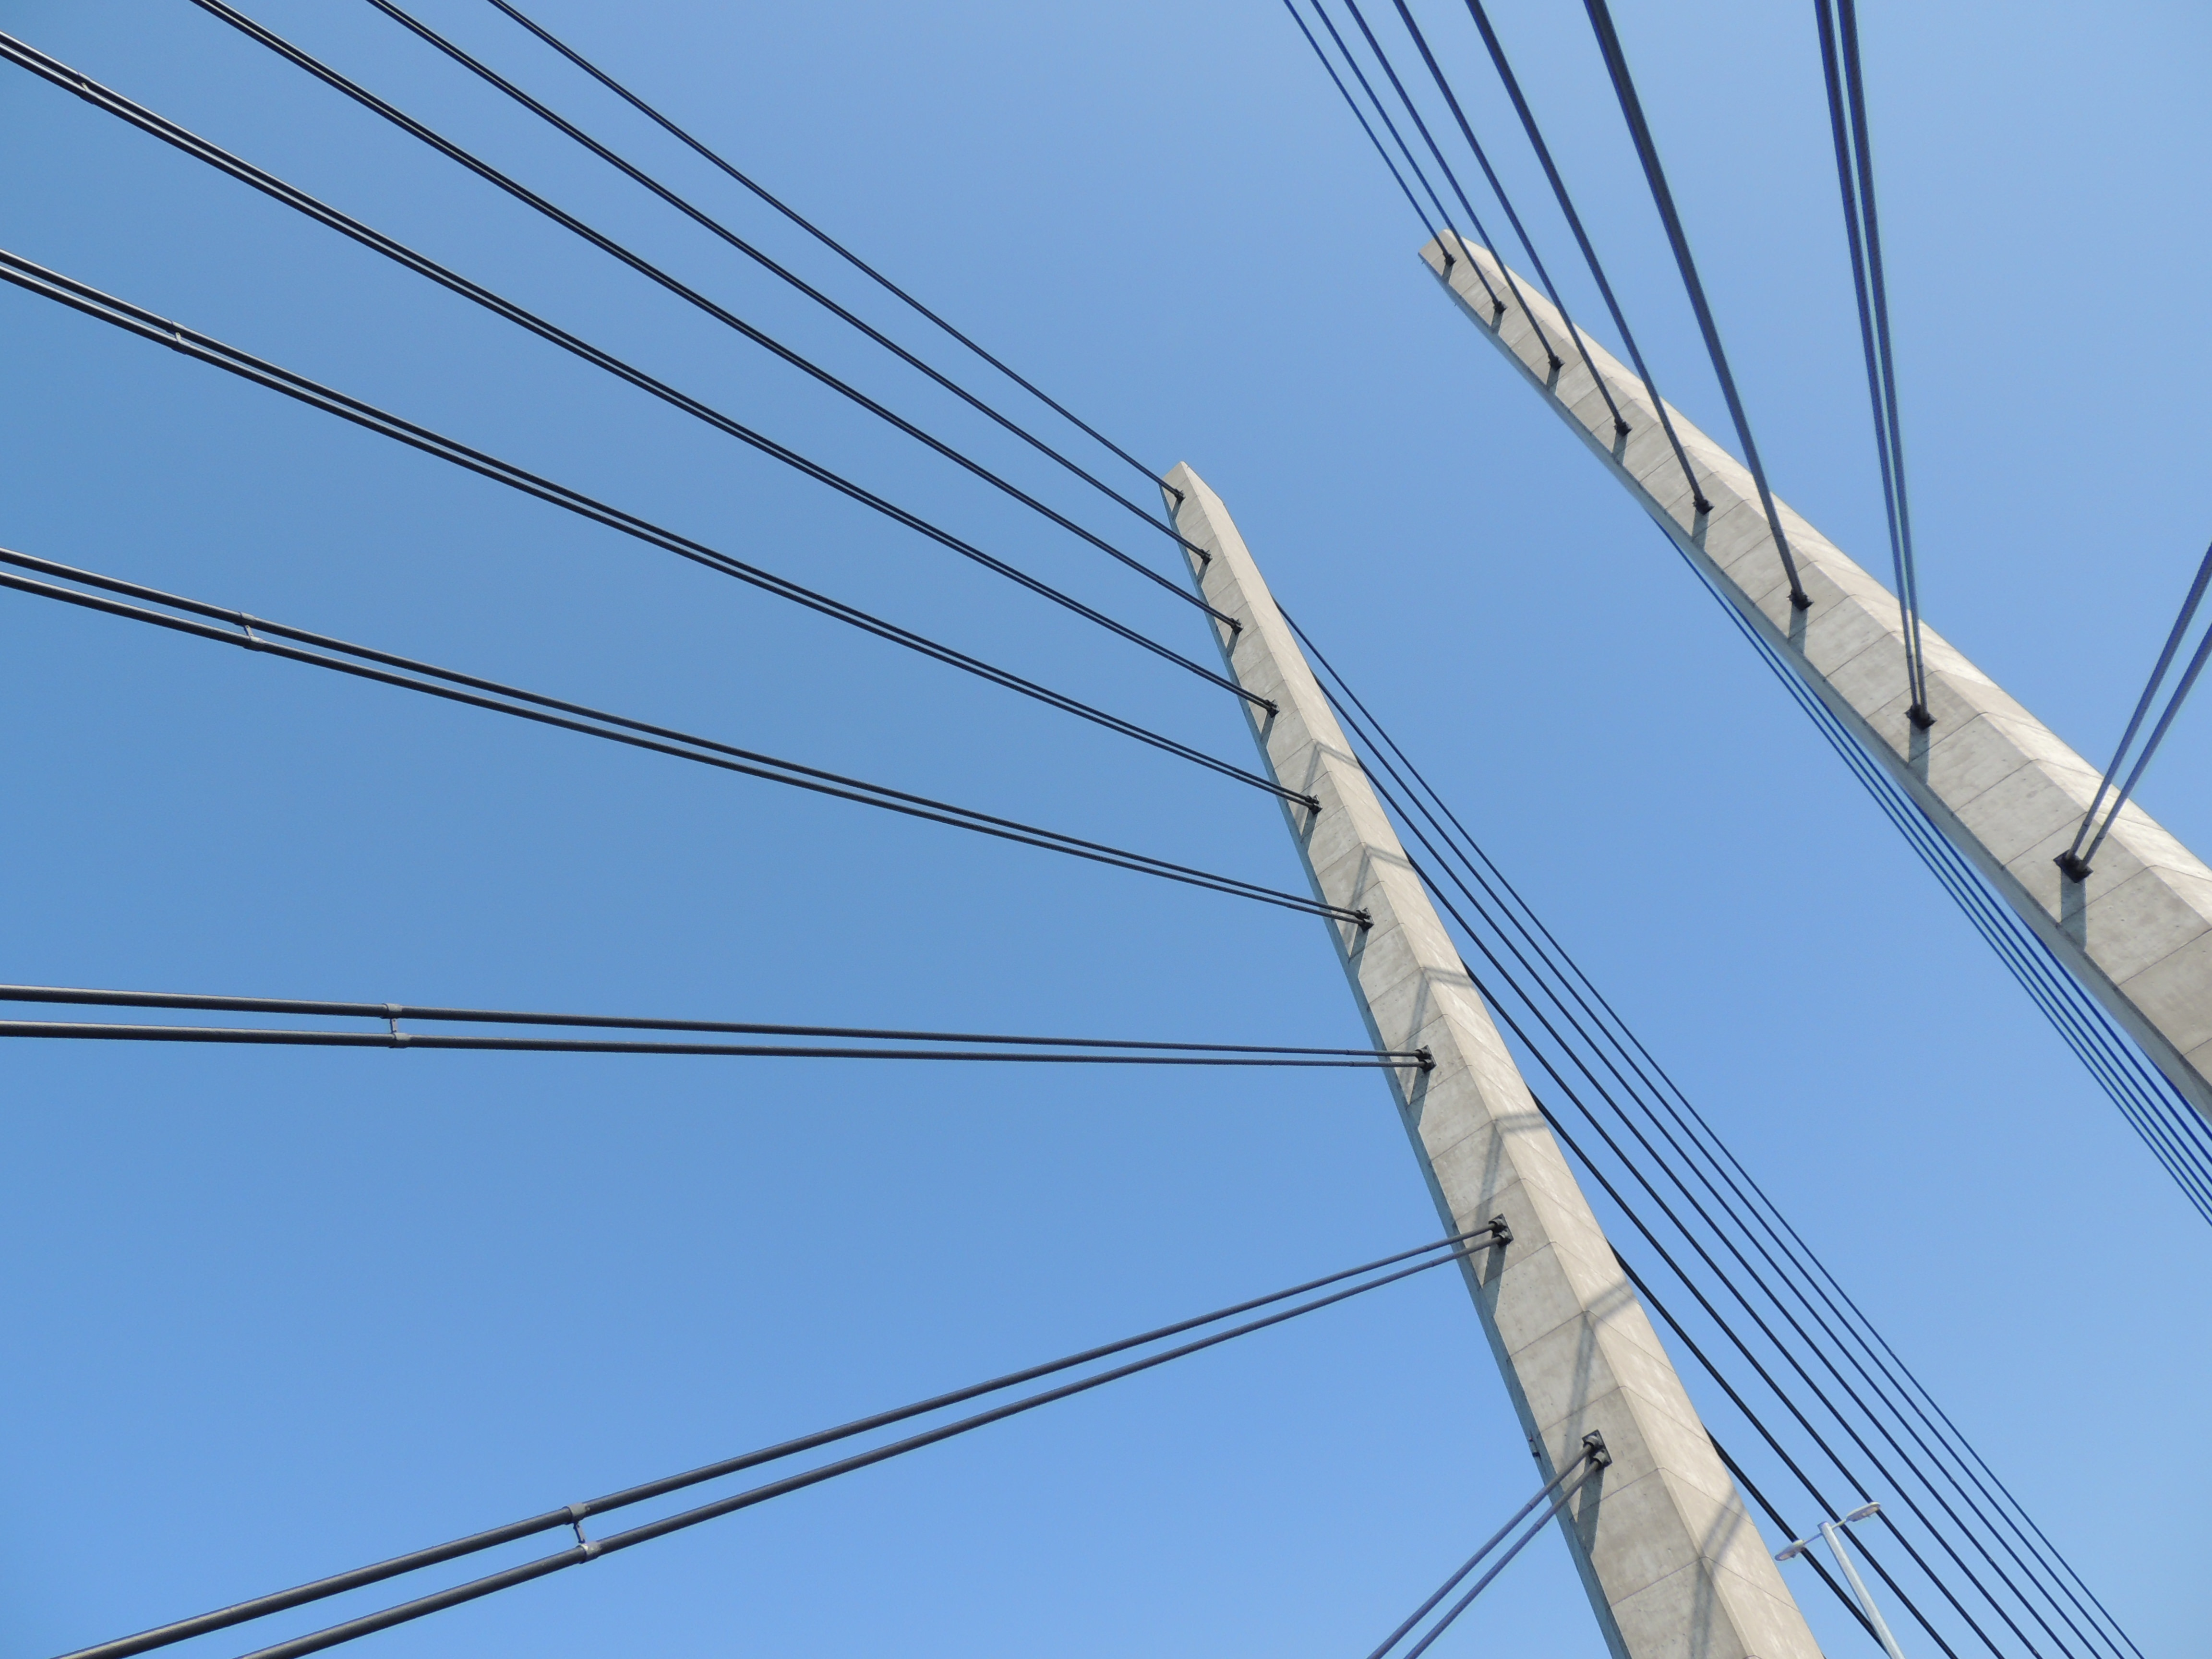 Low Angle Photography of Cable Railings at Daytime